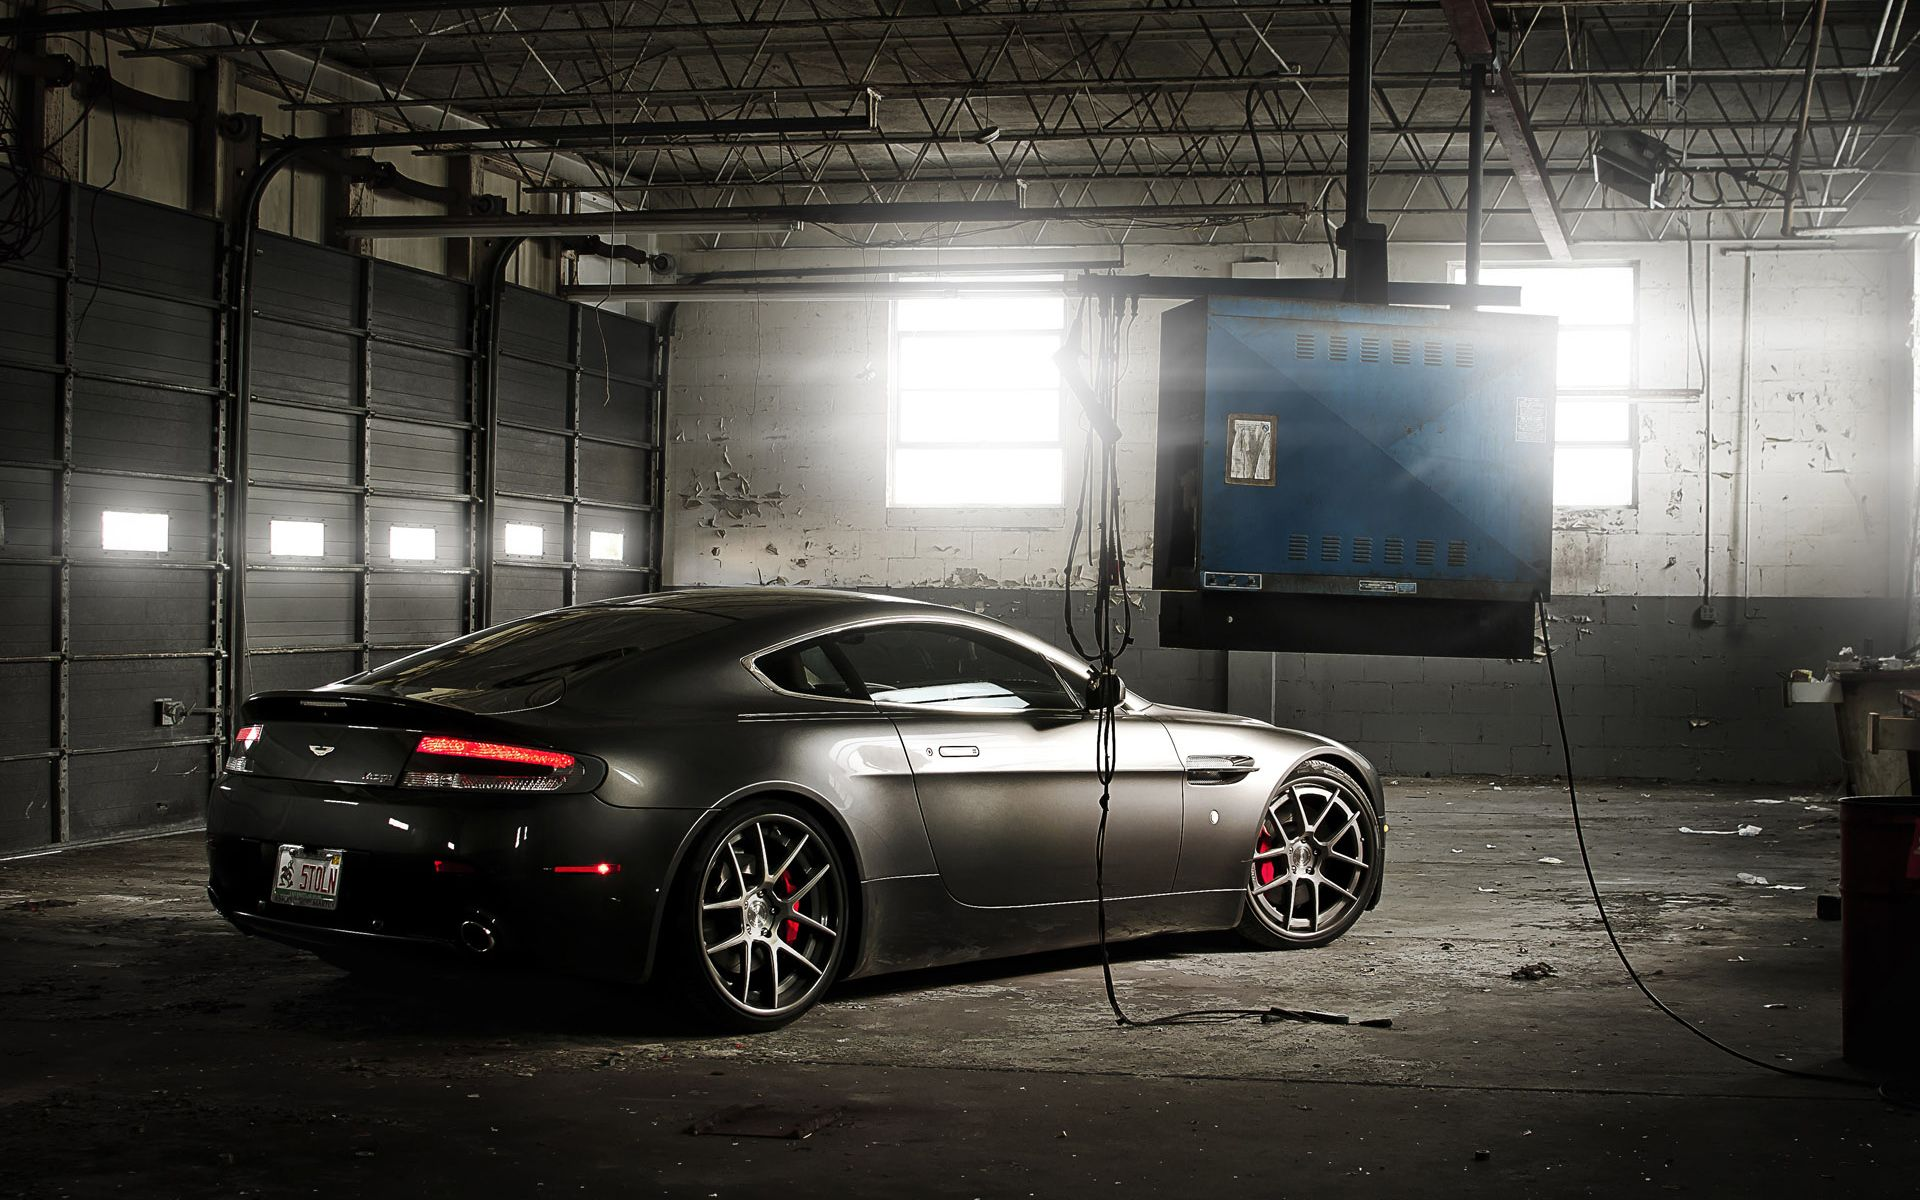 Aston Martin Vantage AKA My Dream Daily Driver